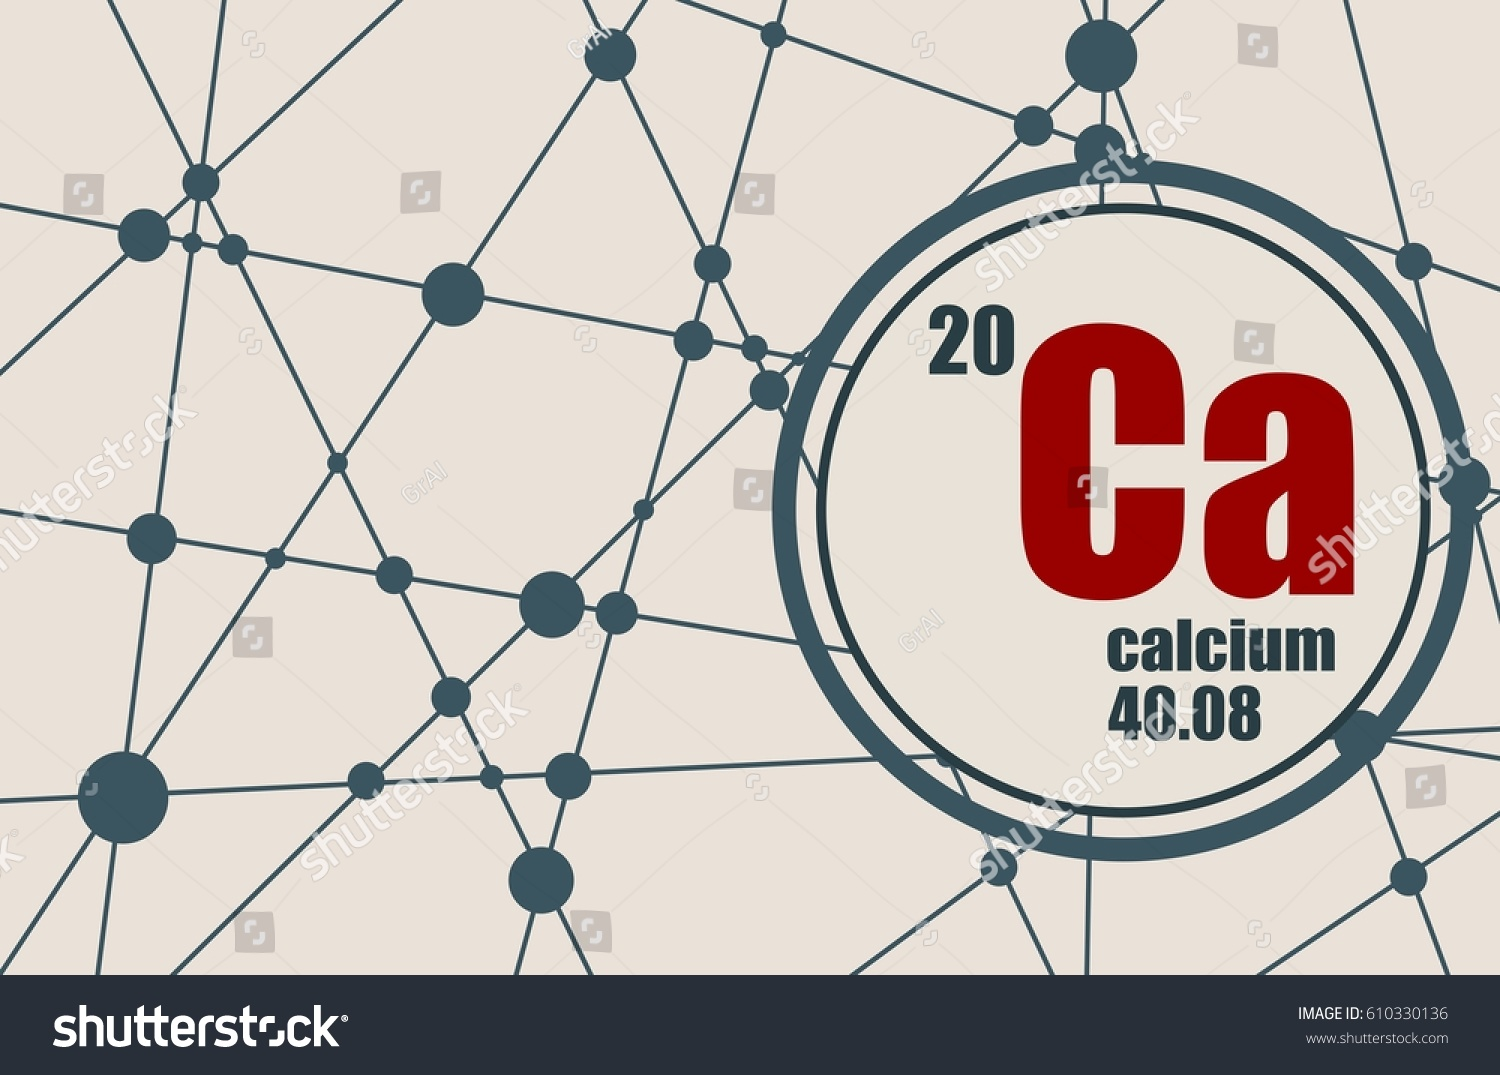 Calcium periodic table facts images periodic table images calcium chemical element sign atomic number stock vector 610330136 calcium chemical element sign with atomic number gamestrikefo Images